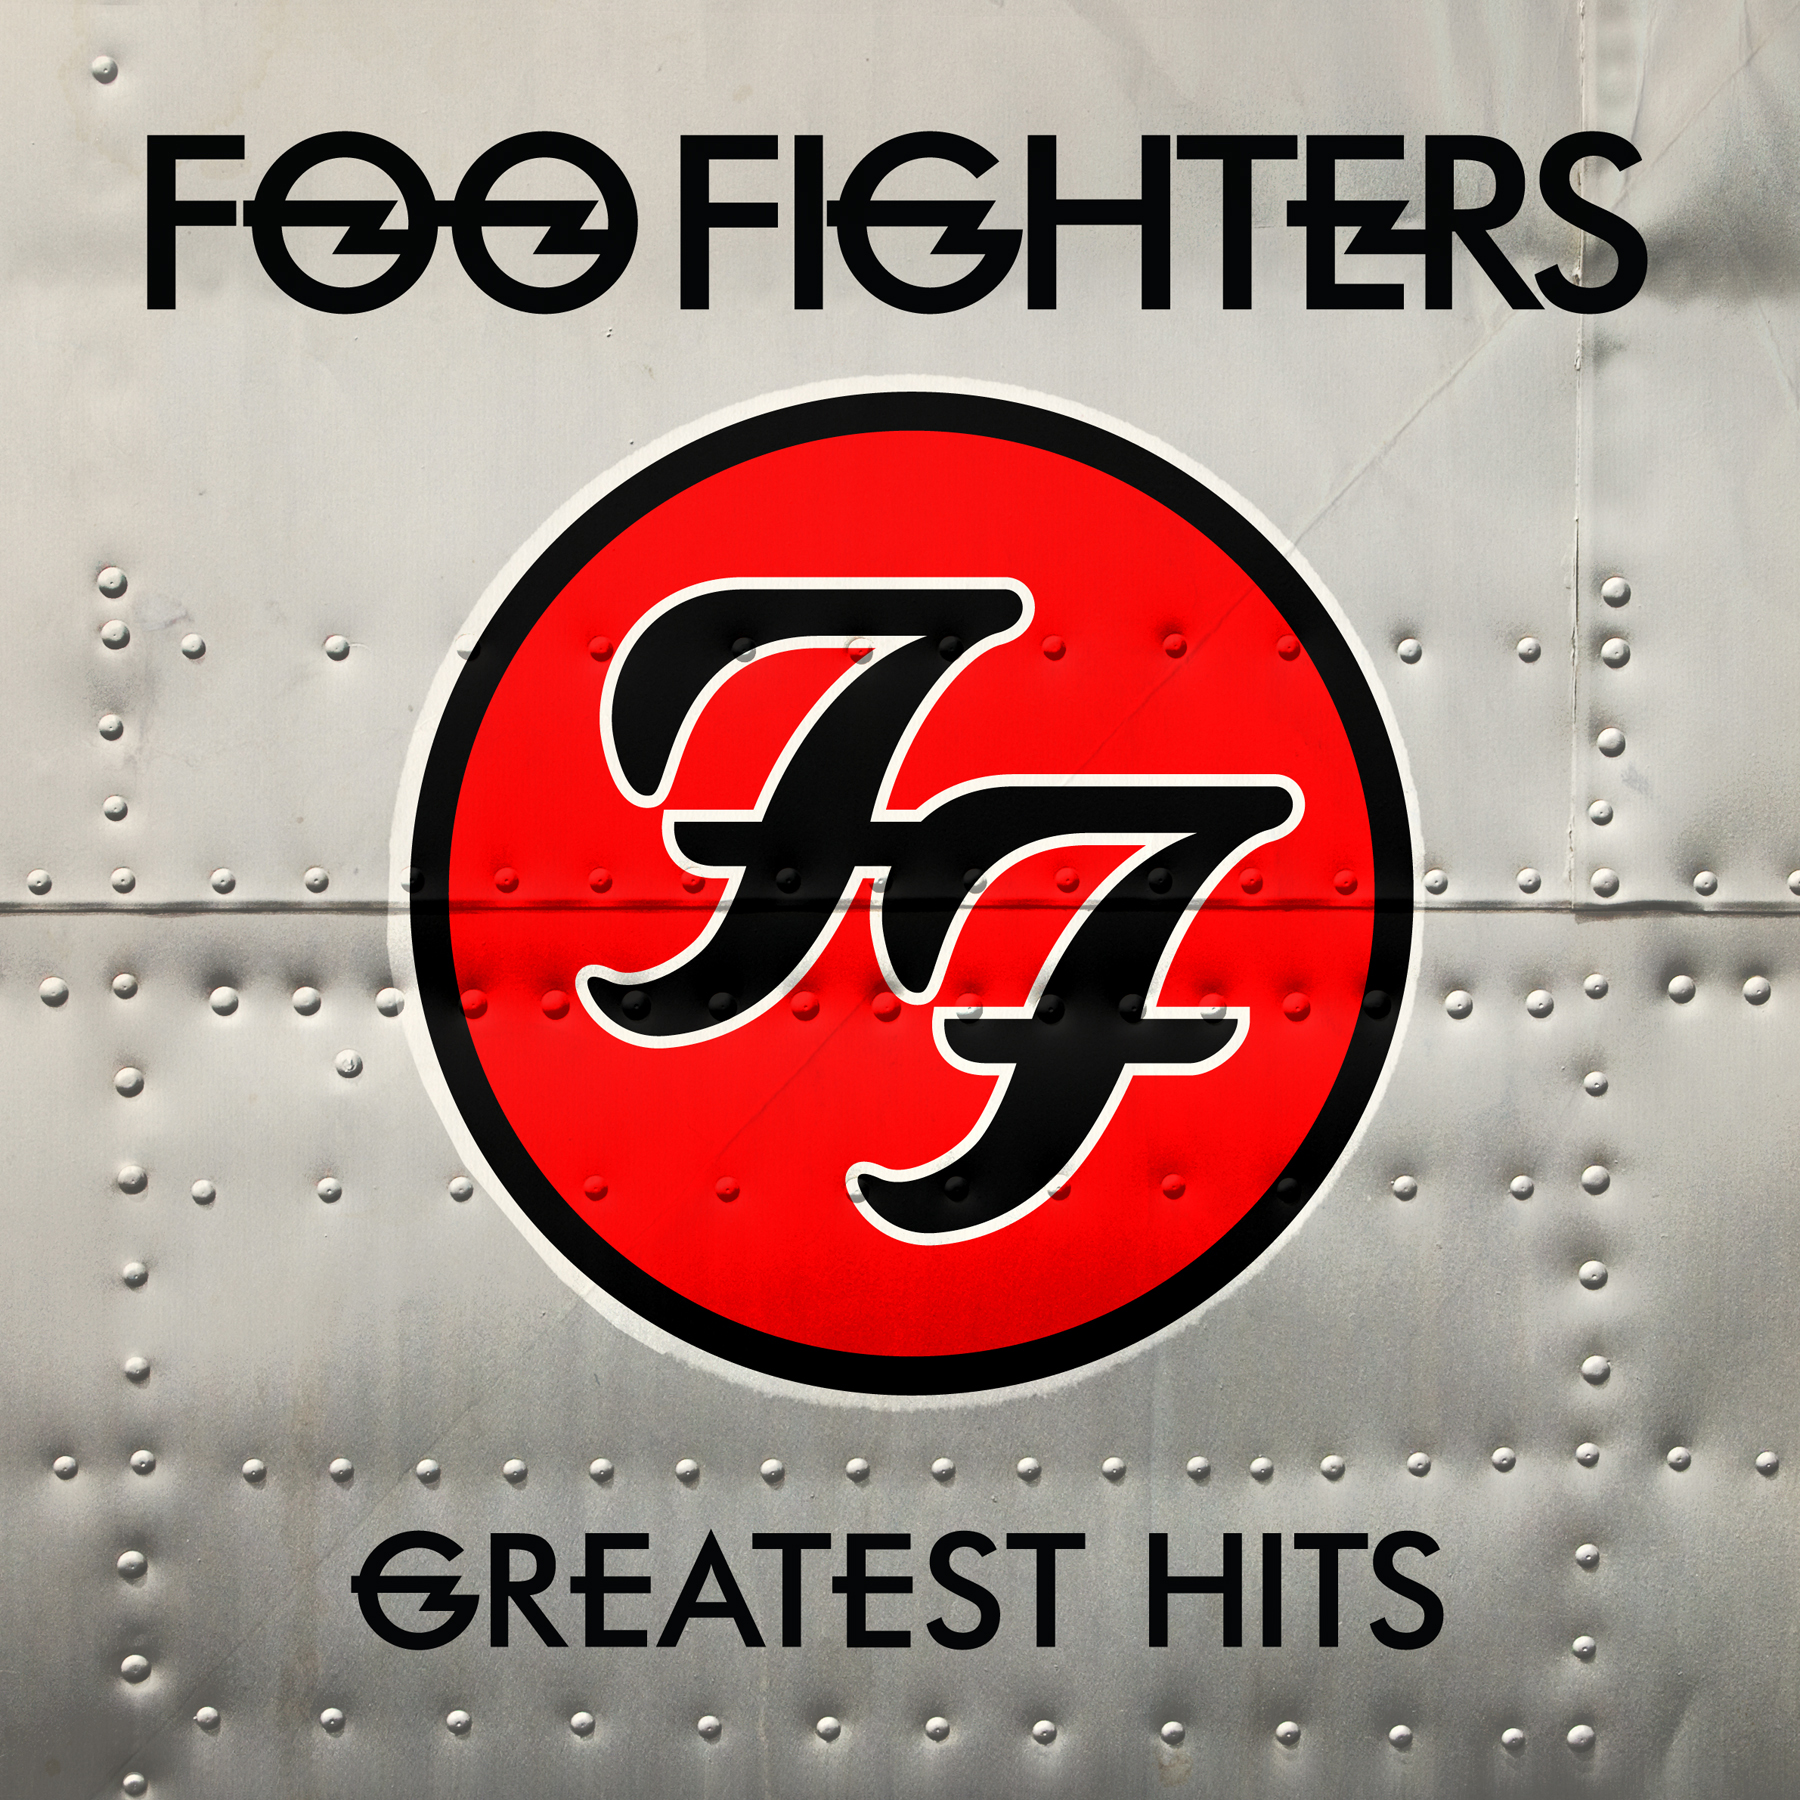 Foo-Fighters-Greatest-Hits.jpg